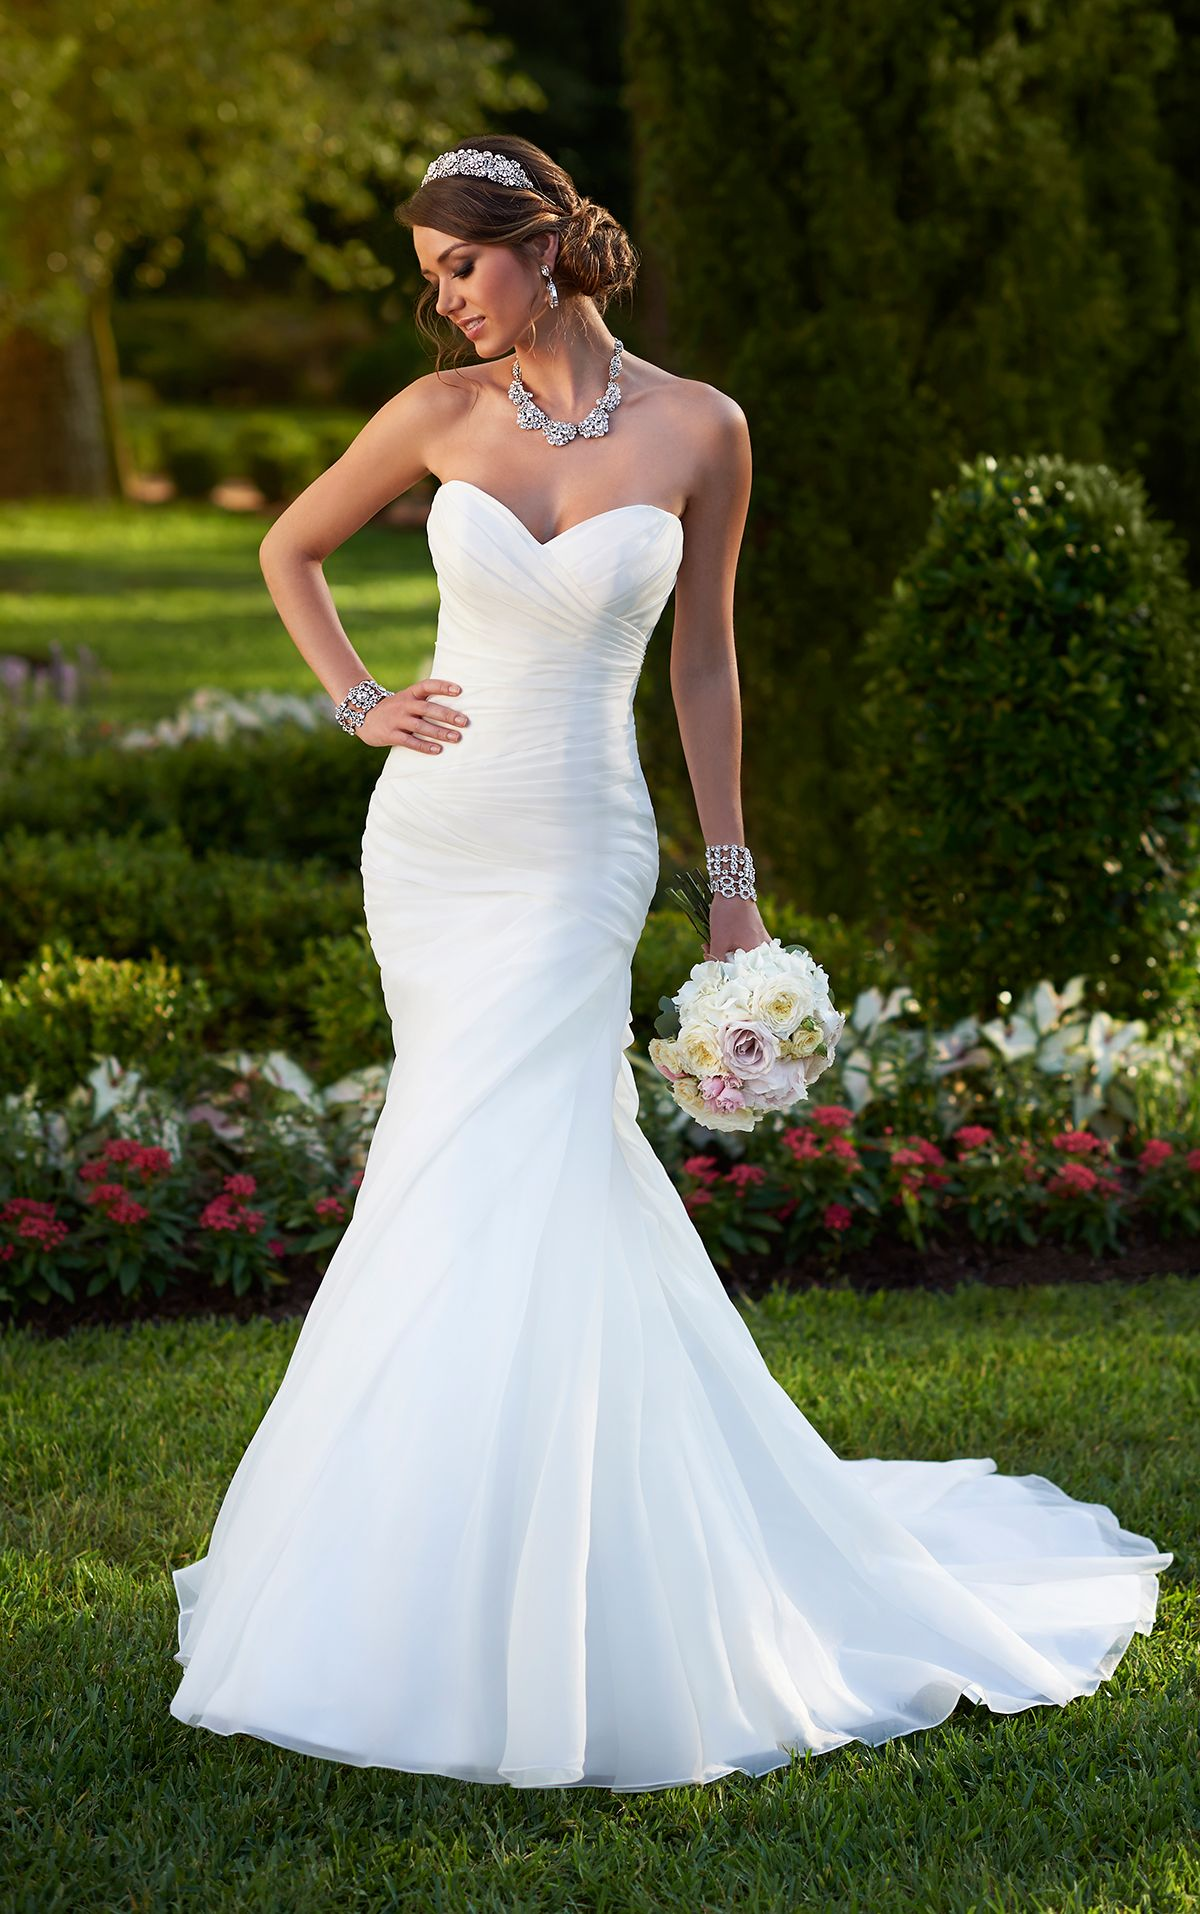 Look Through Sweetheart Neckline Strapless Fit And Flare Wedding Gowns Featuring An Asymmetrical Ruched